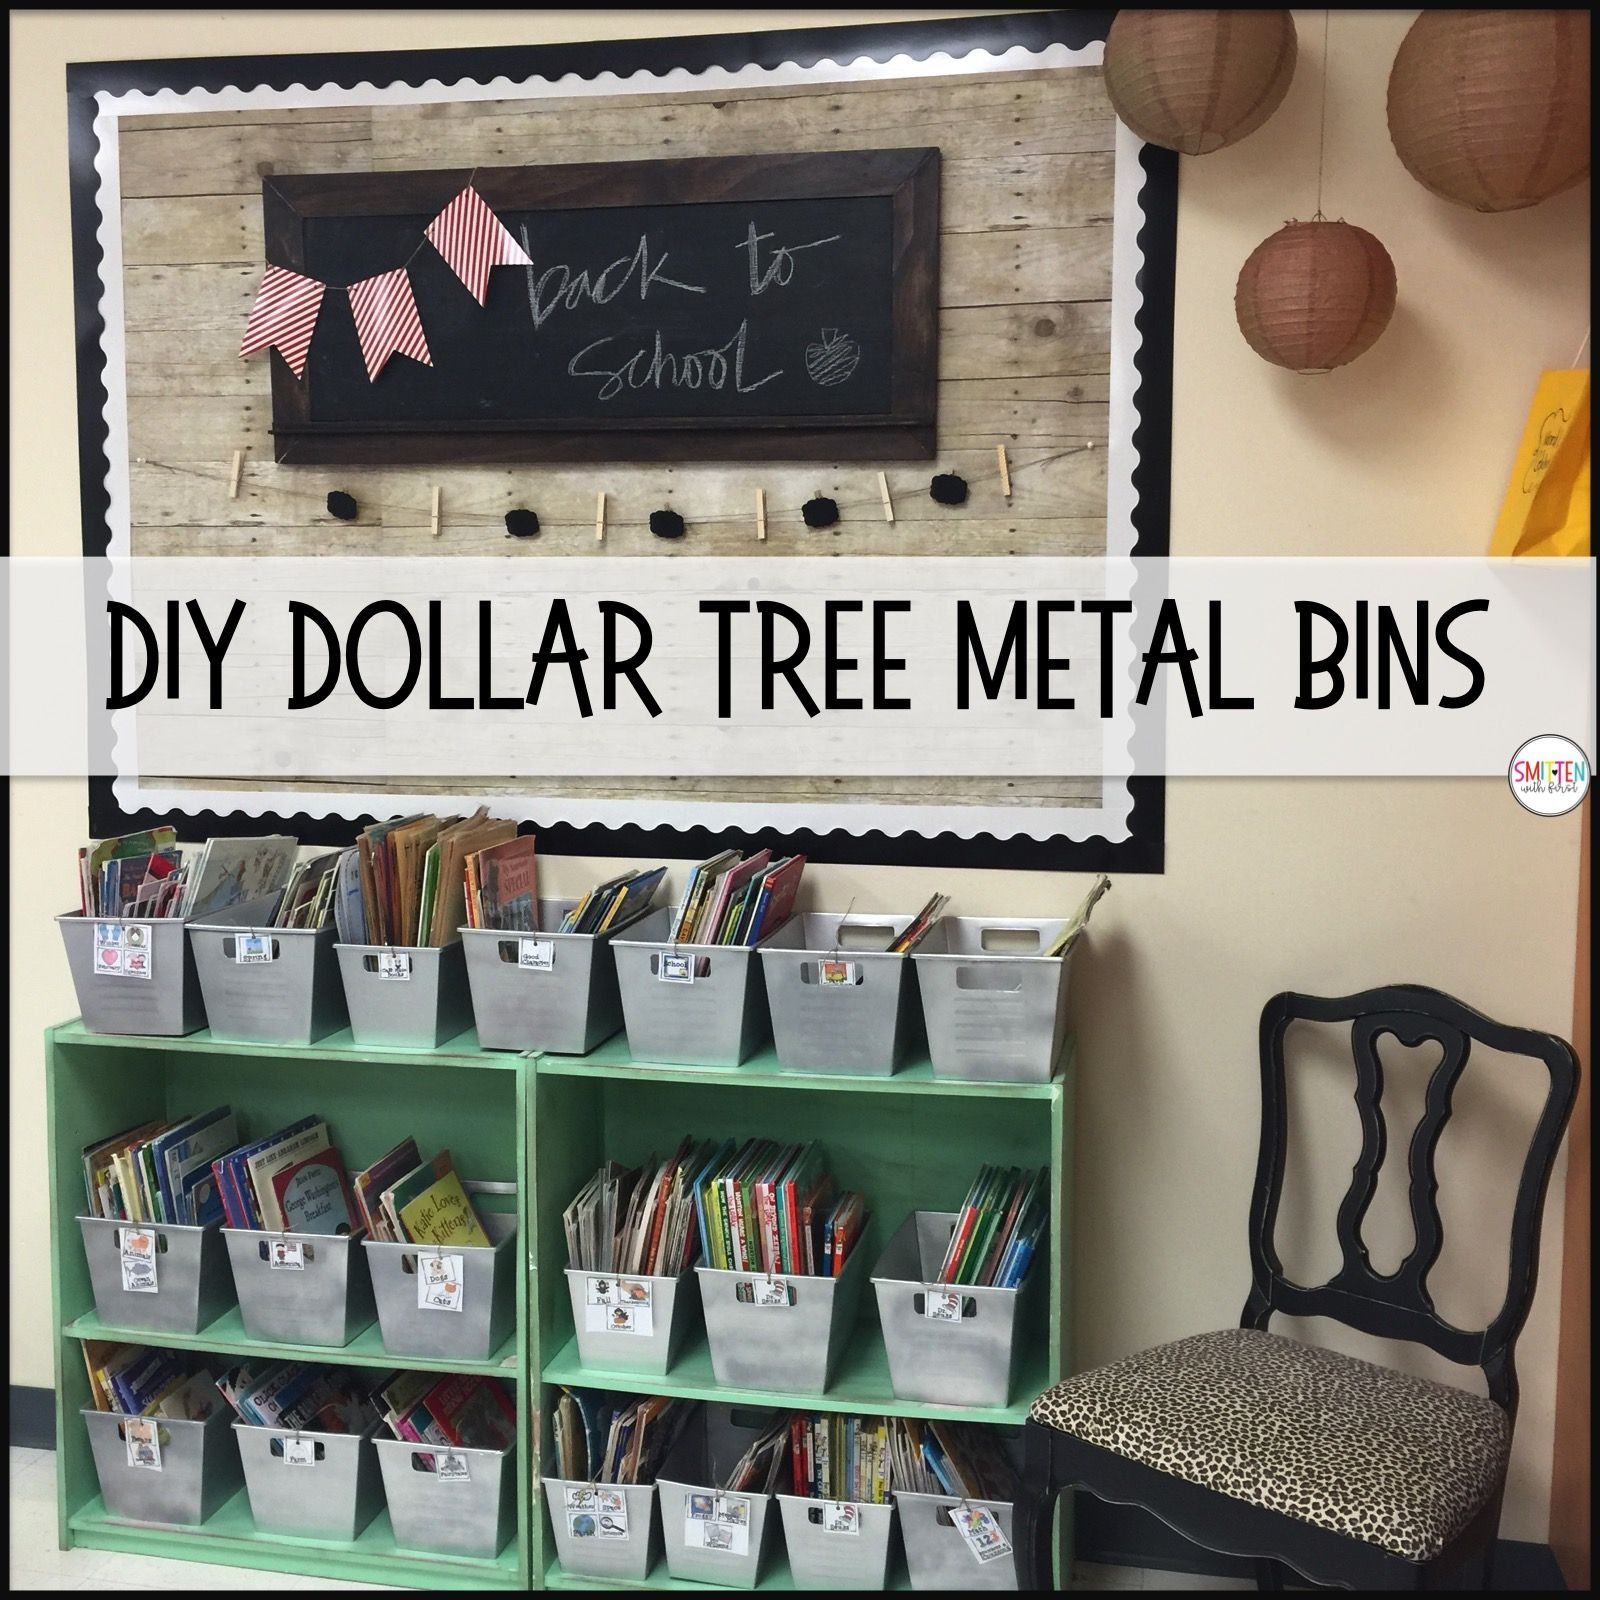 DIY Dollar Tree Metal Locker Bins farmhouse classroom -  DIY Dollar Tree Metal Locker Bins farmhous